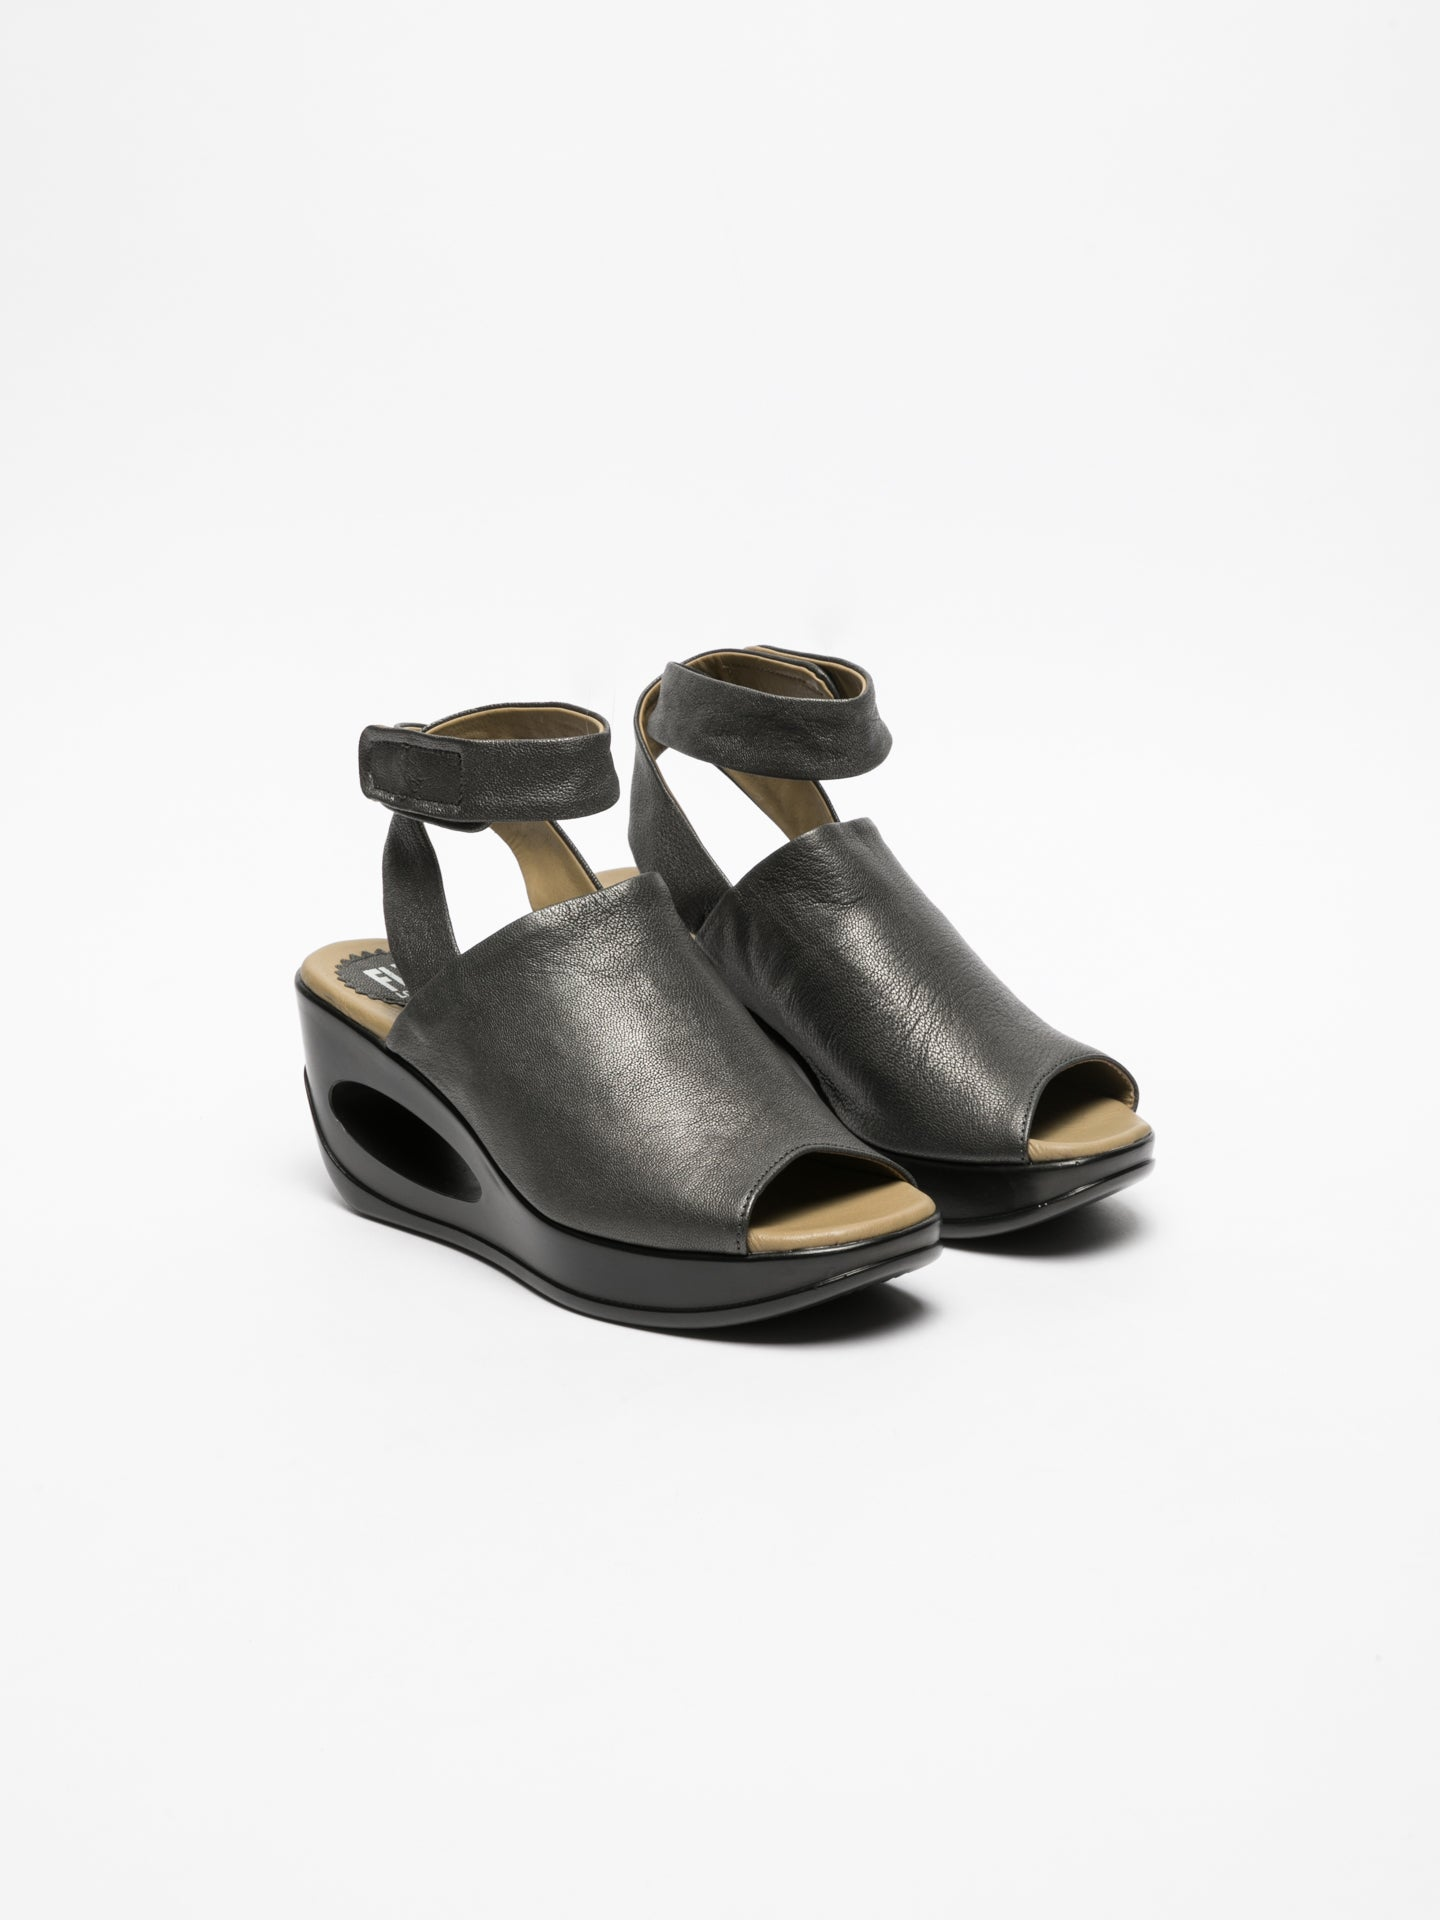 Fly London Gray Wedge Sandals